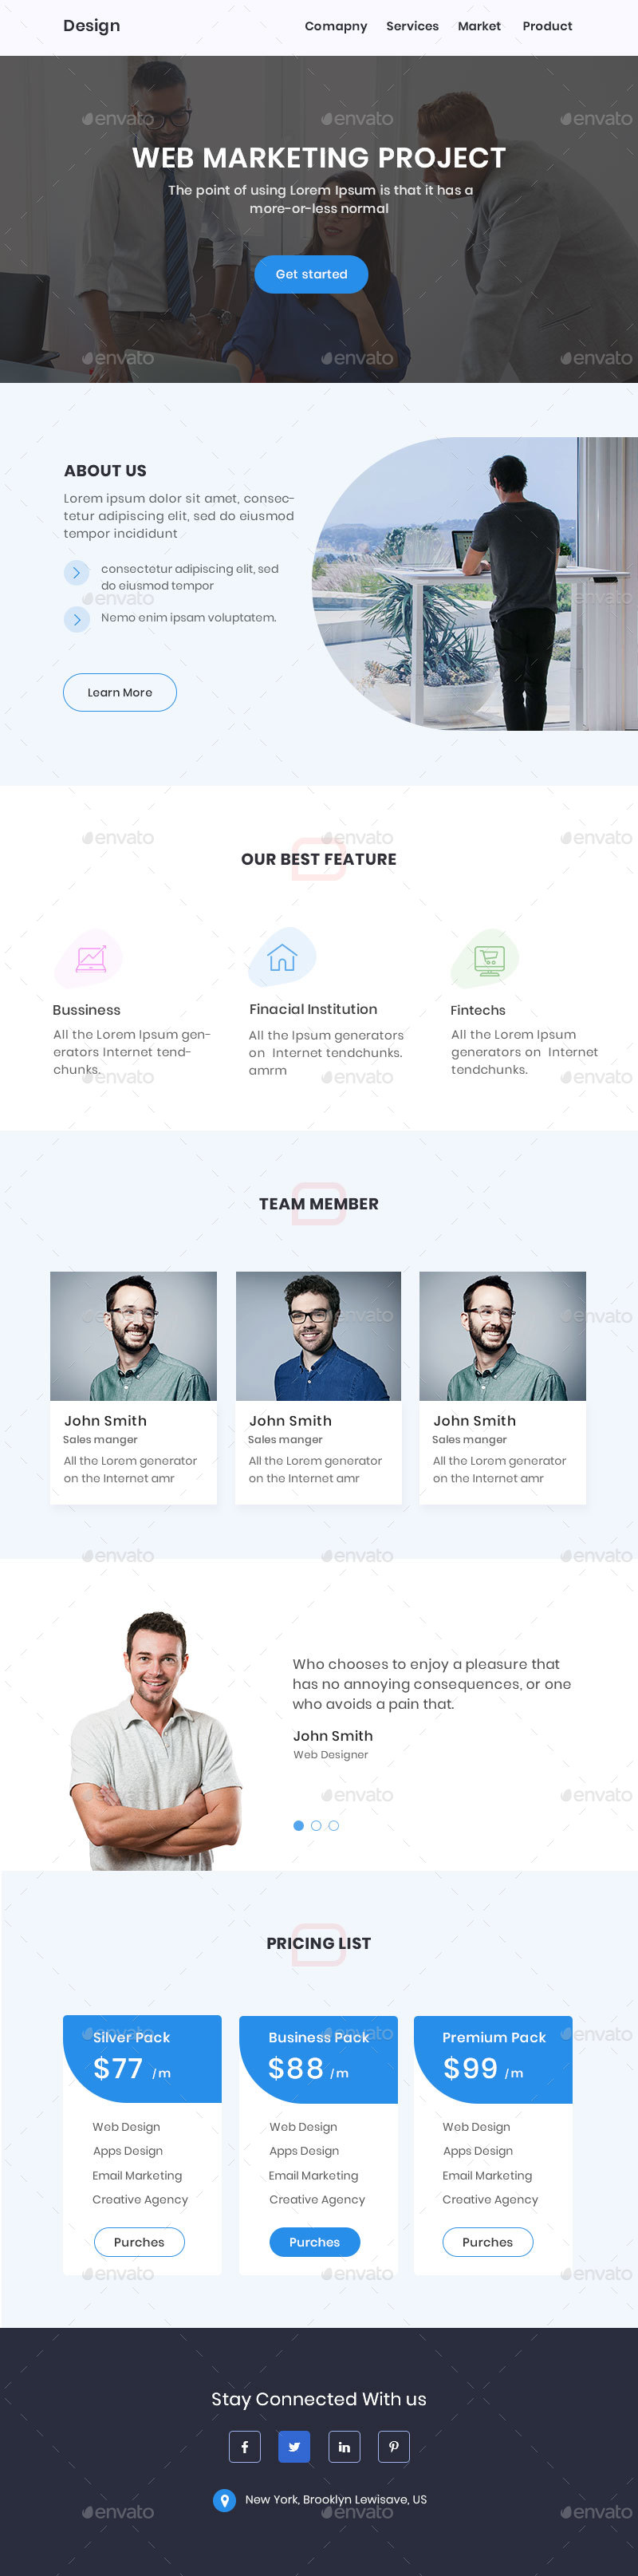 Minimal Email Template By Masump GraphicRiver - Minimal email template